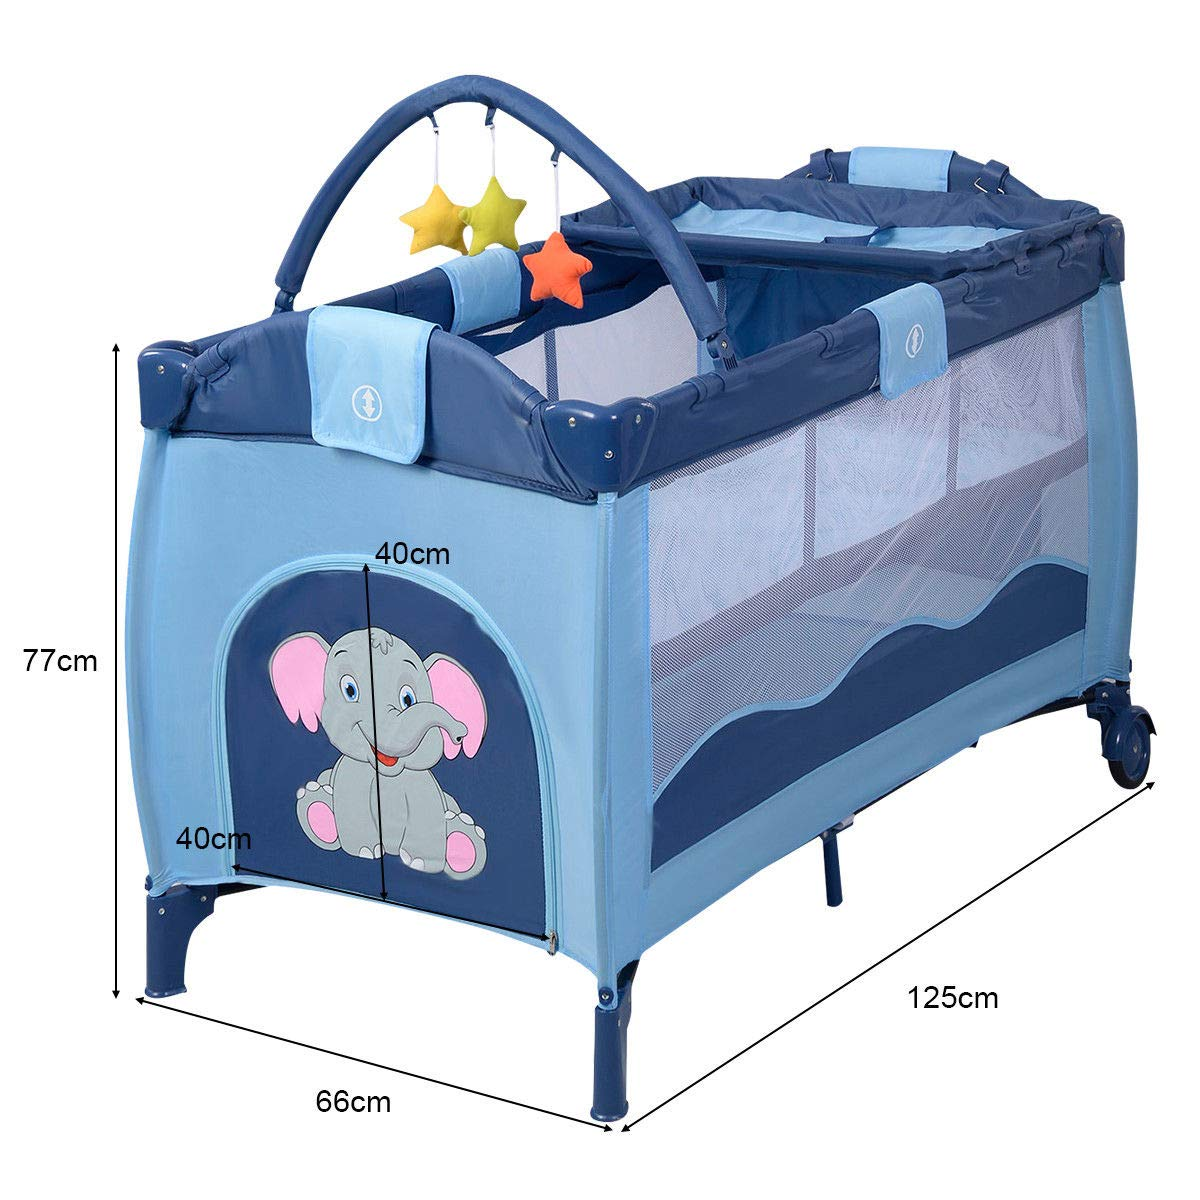 Toddler Baby Crib Playard Pack Playpen Bassinet Travel Infant Bed Portable Foldable by WealthyPlaza (Image #6)